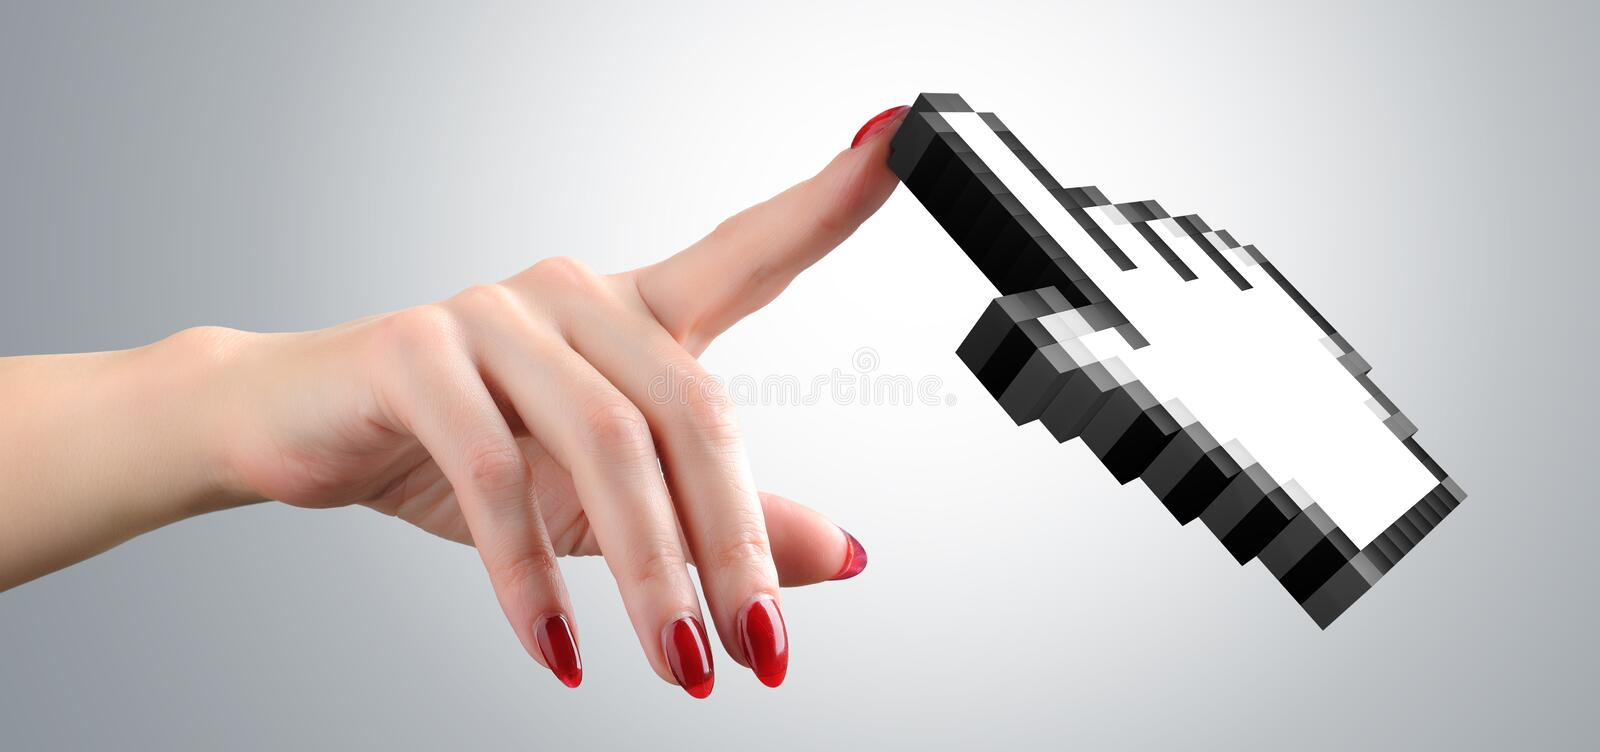 Woman's hand touch cursor computer mouse. File contains a path to isolation vector illustration